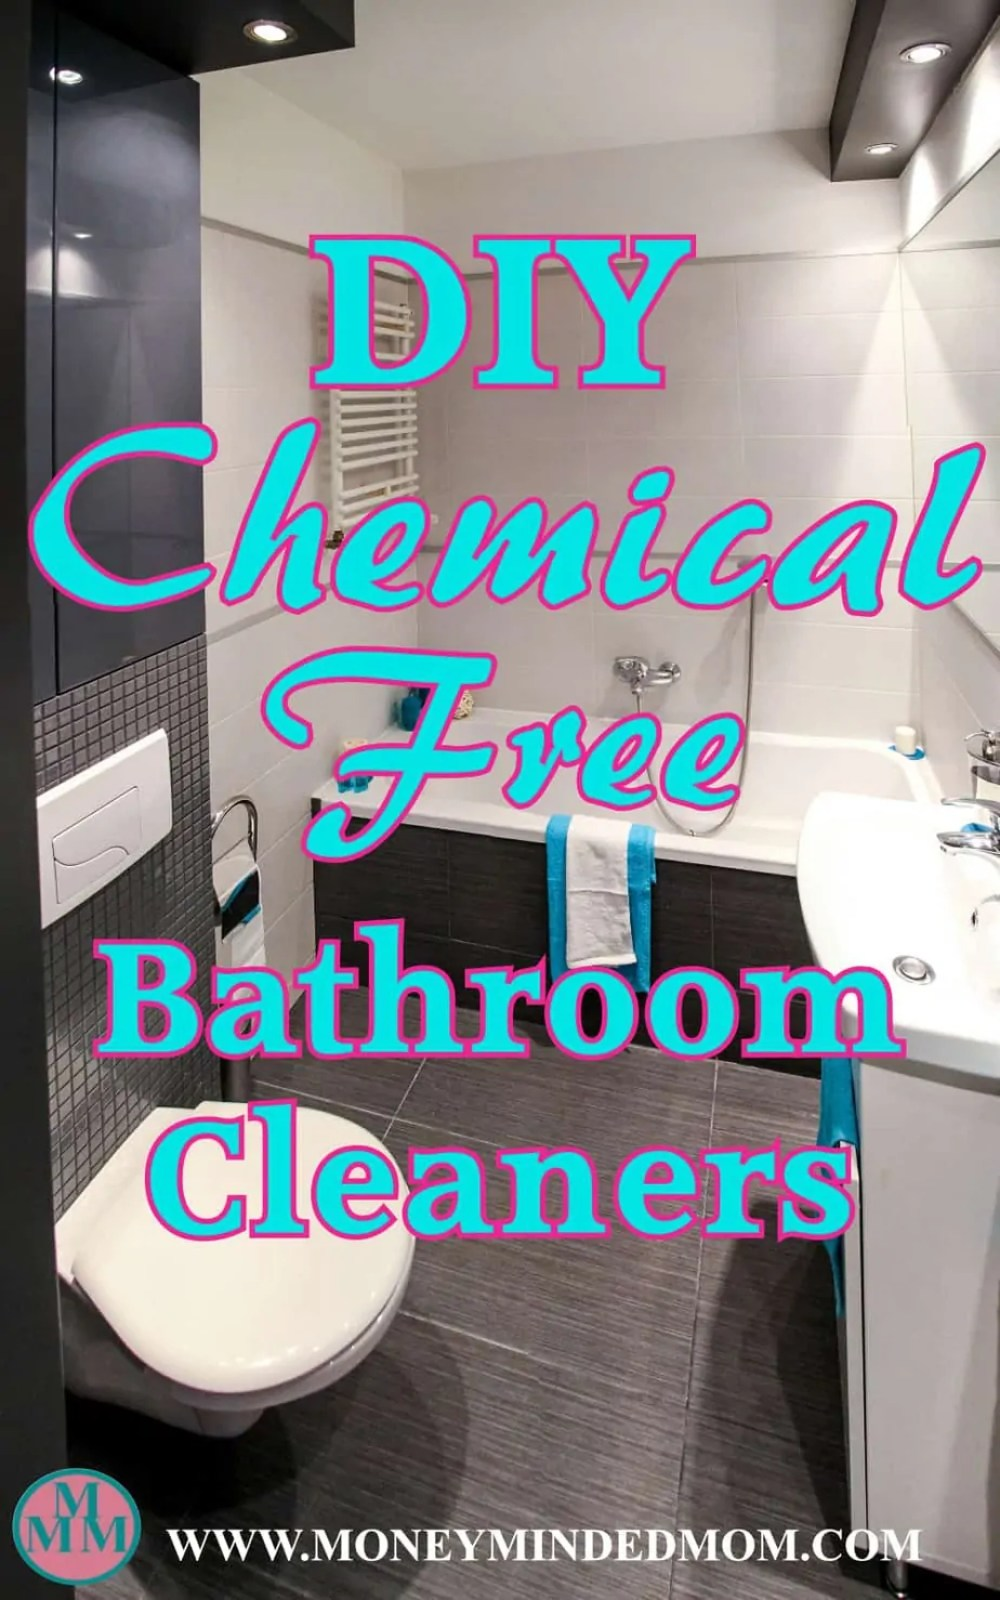 DIY Chemical Free Bathroom Cleaners - Looking for healthier options to clean your home? Check out these DIY Chemical Free Cleaners.